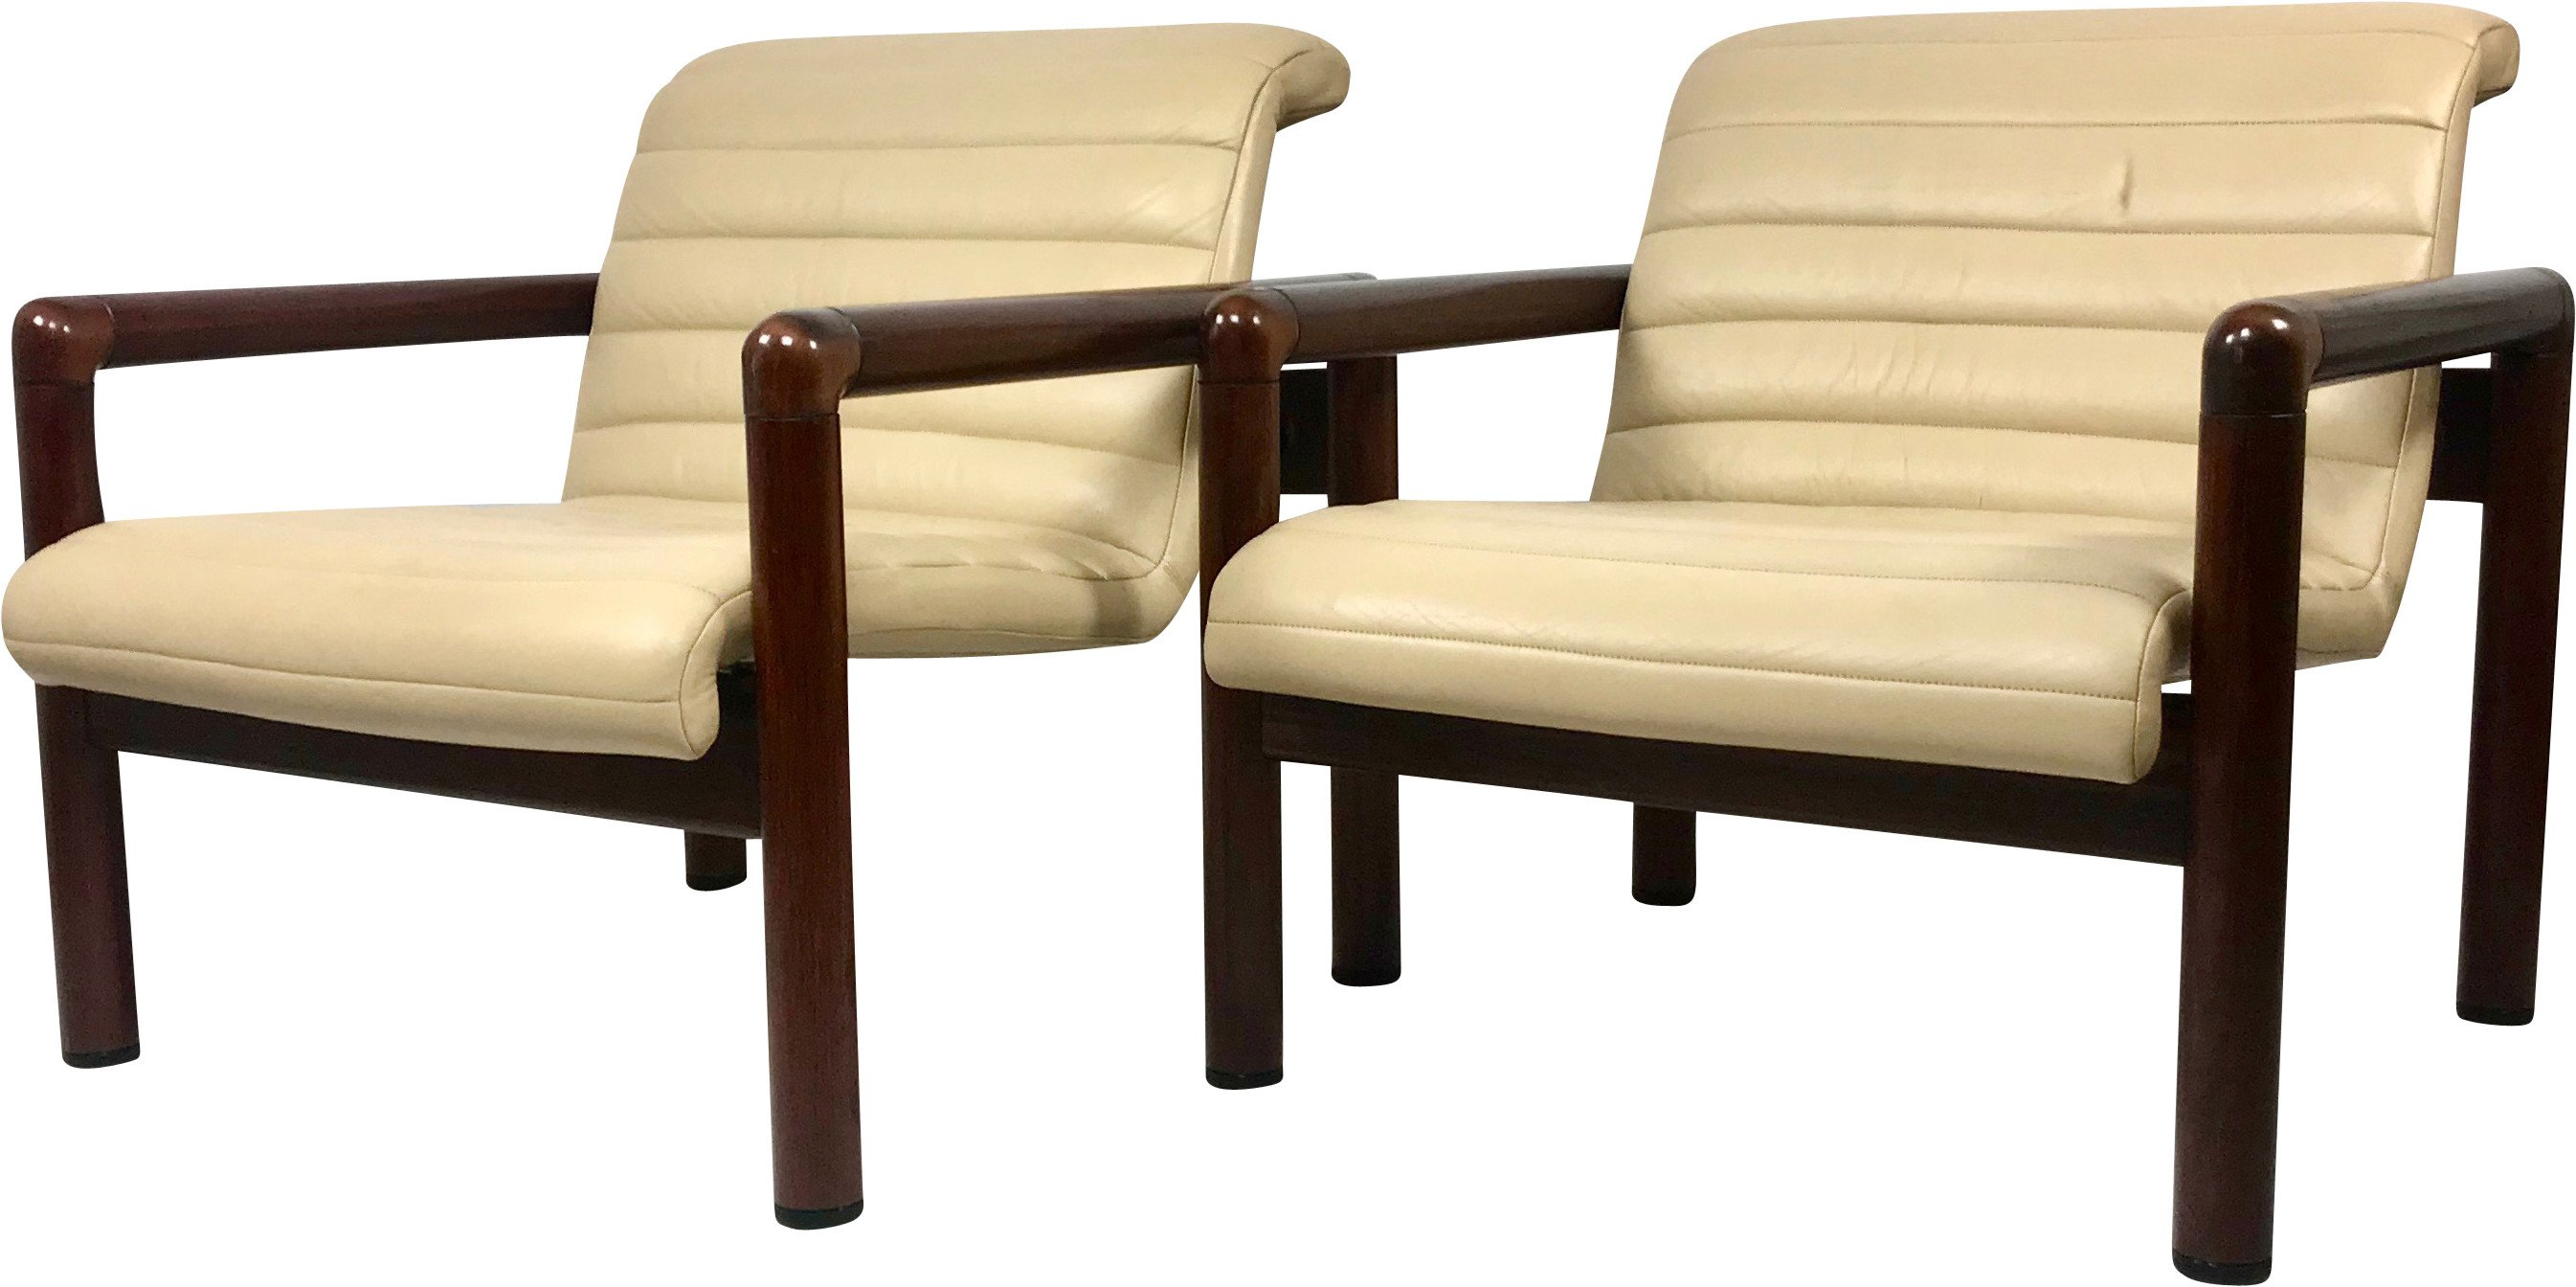 Pair of Armchairs, 1990s